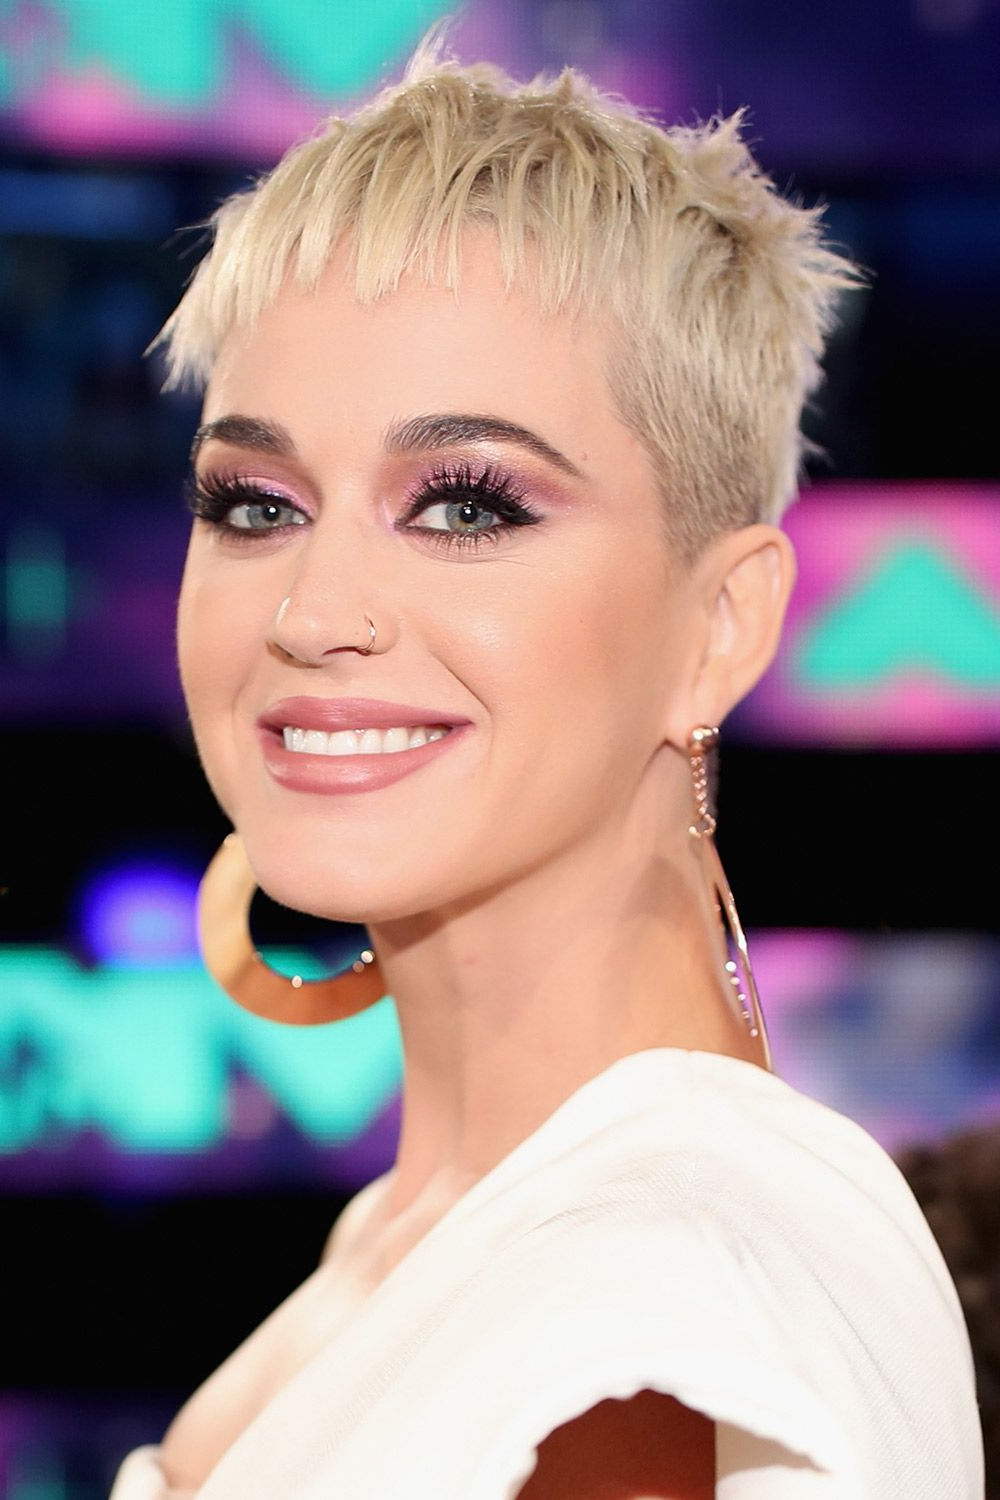 65 Best Short Hairstyles, Haircuts, And Short Hair Ideas For 2018 Throughout Short Haircuts For Women In 20S (Gallery 11 of 25)